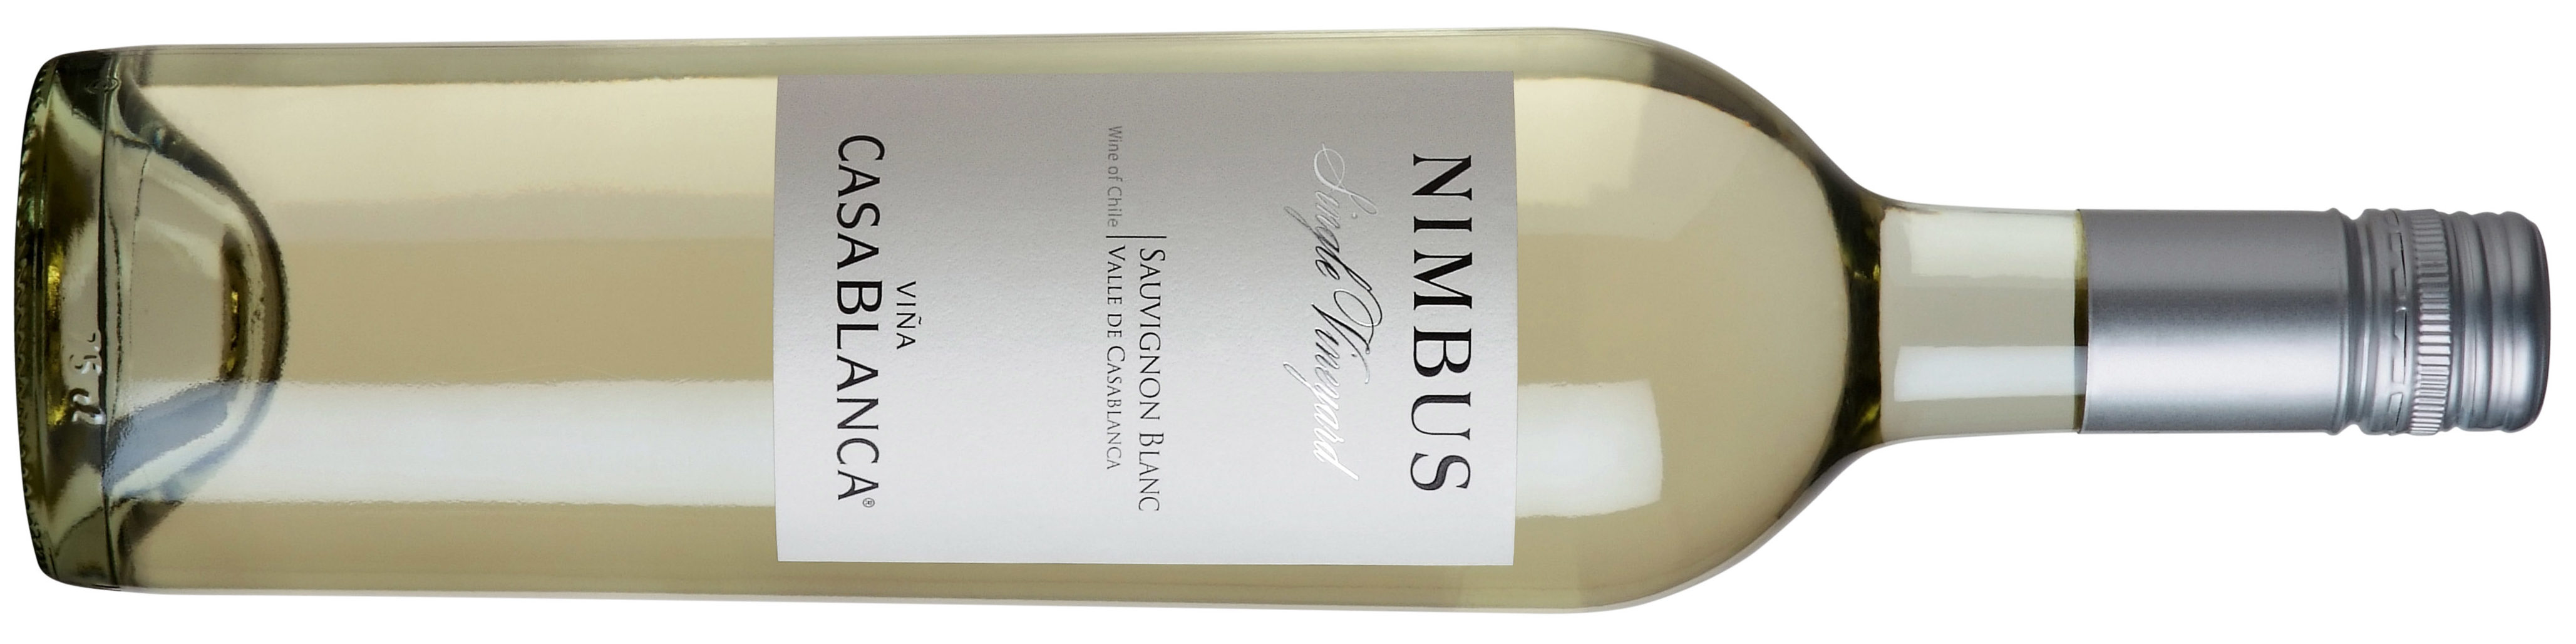 nimbus-single-vineyard-sauvignon-blanc